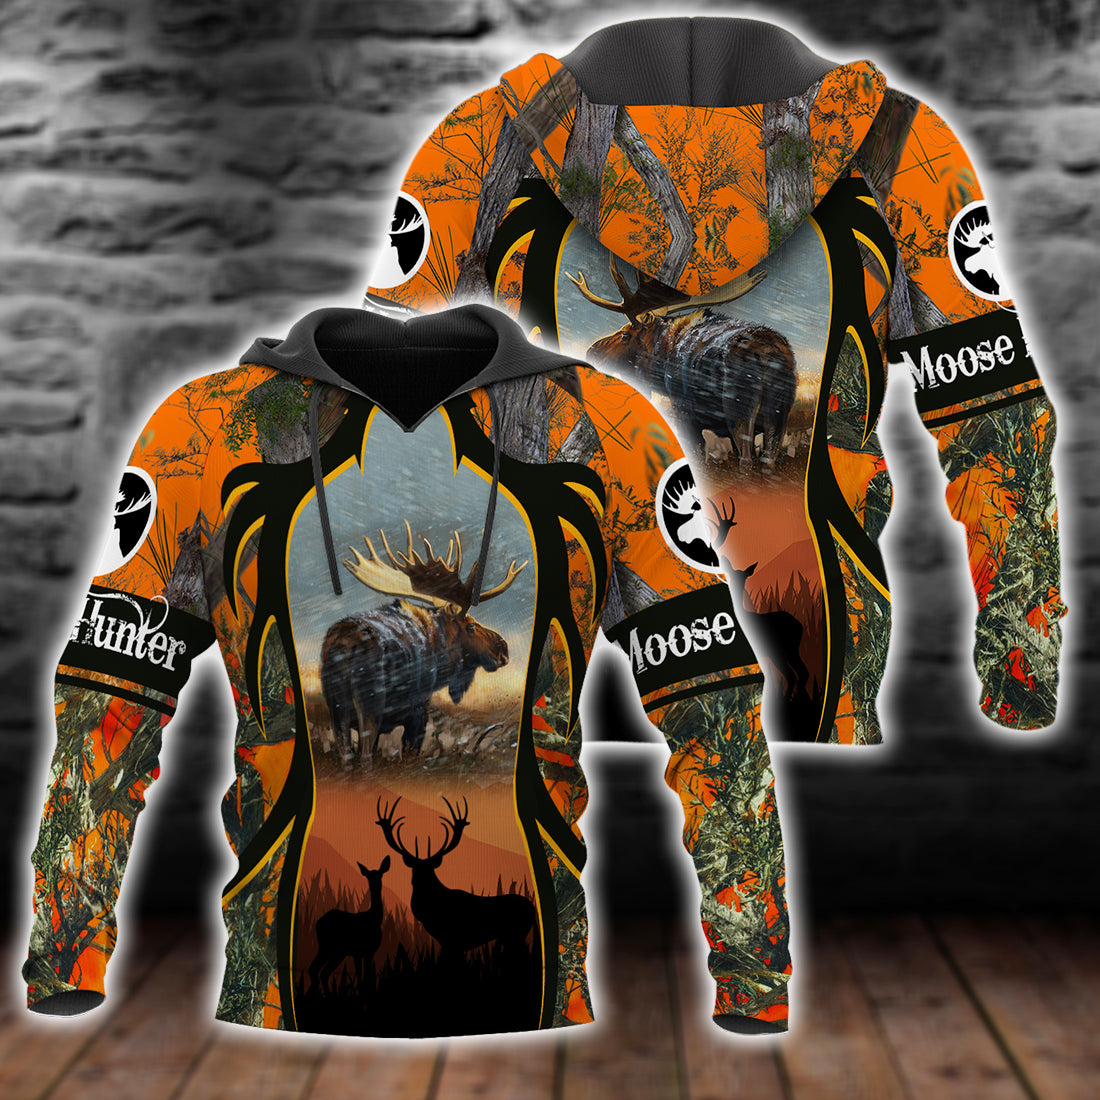 Moose Hunting Camo All Over Print Shirt For Men And Women